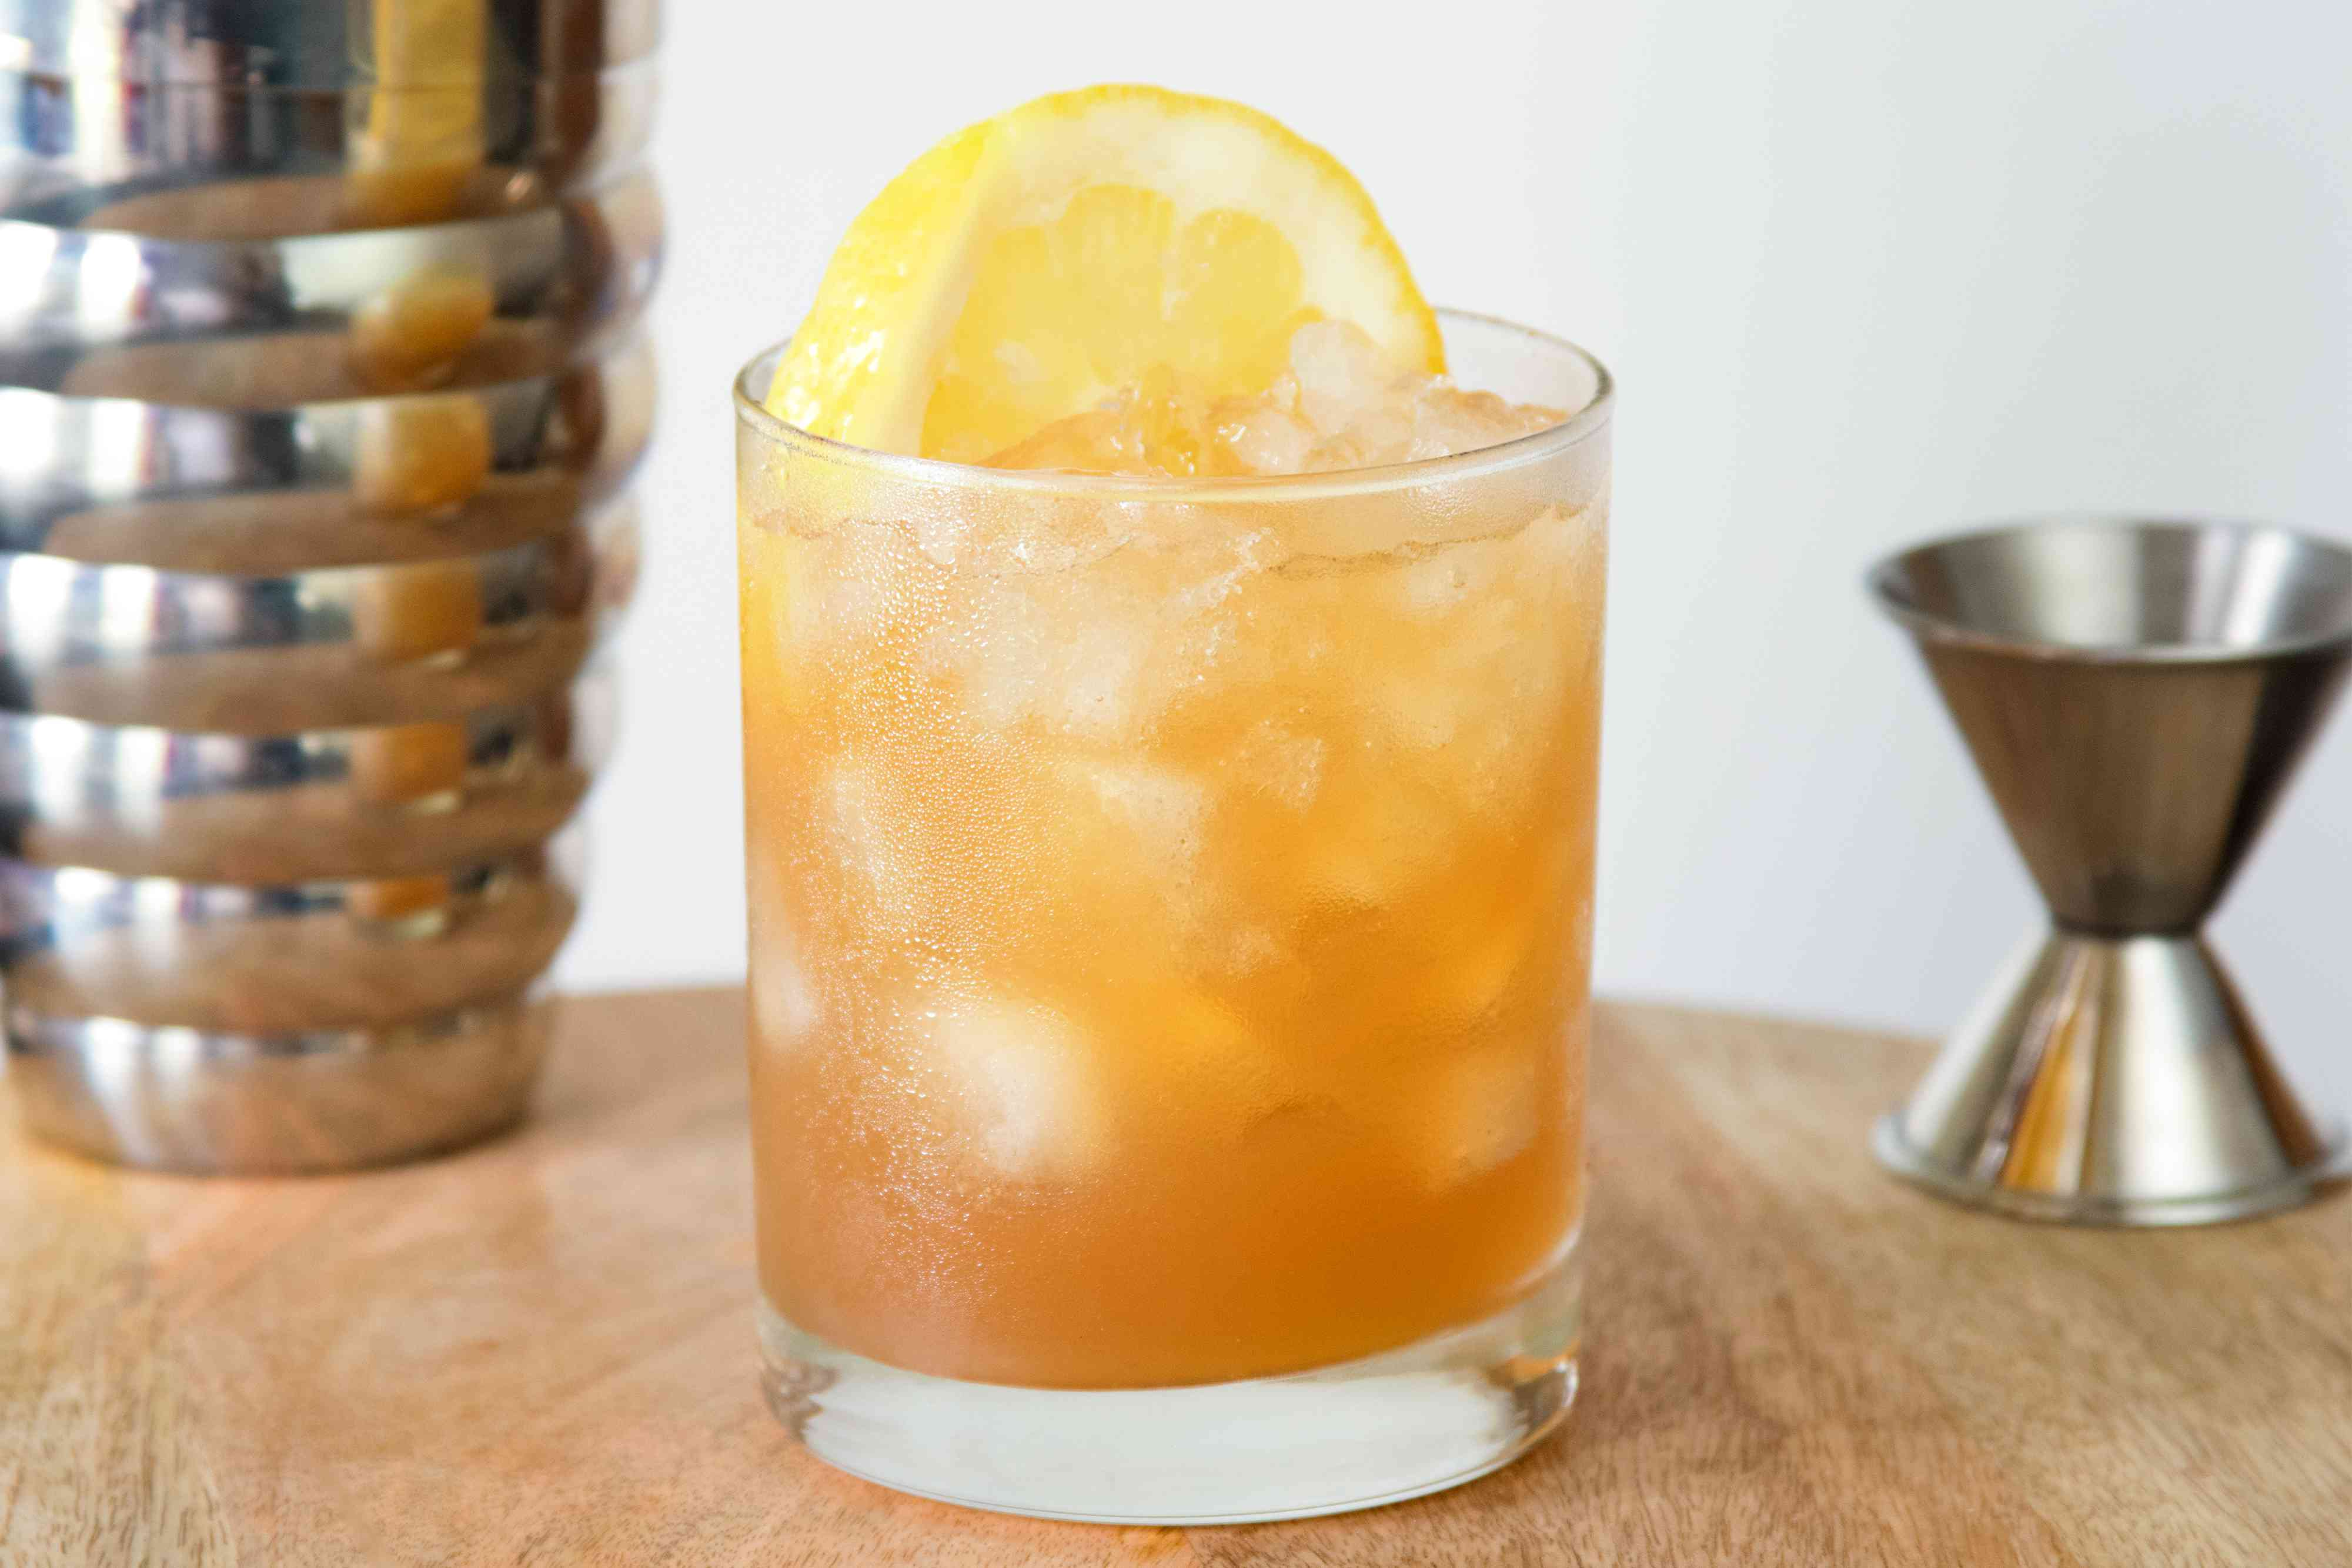 Gillie Fix Scotch Whisky Cocktail for Game of Thrones